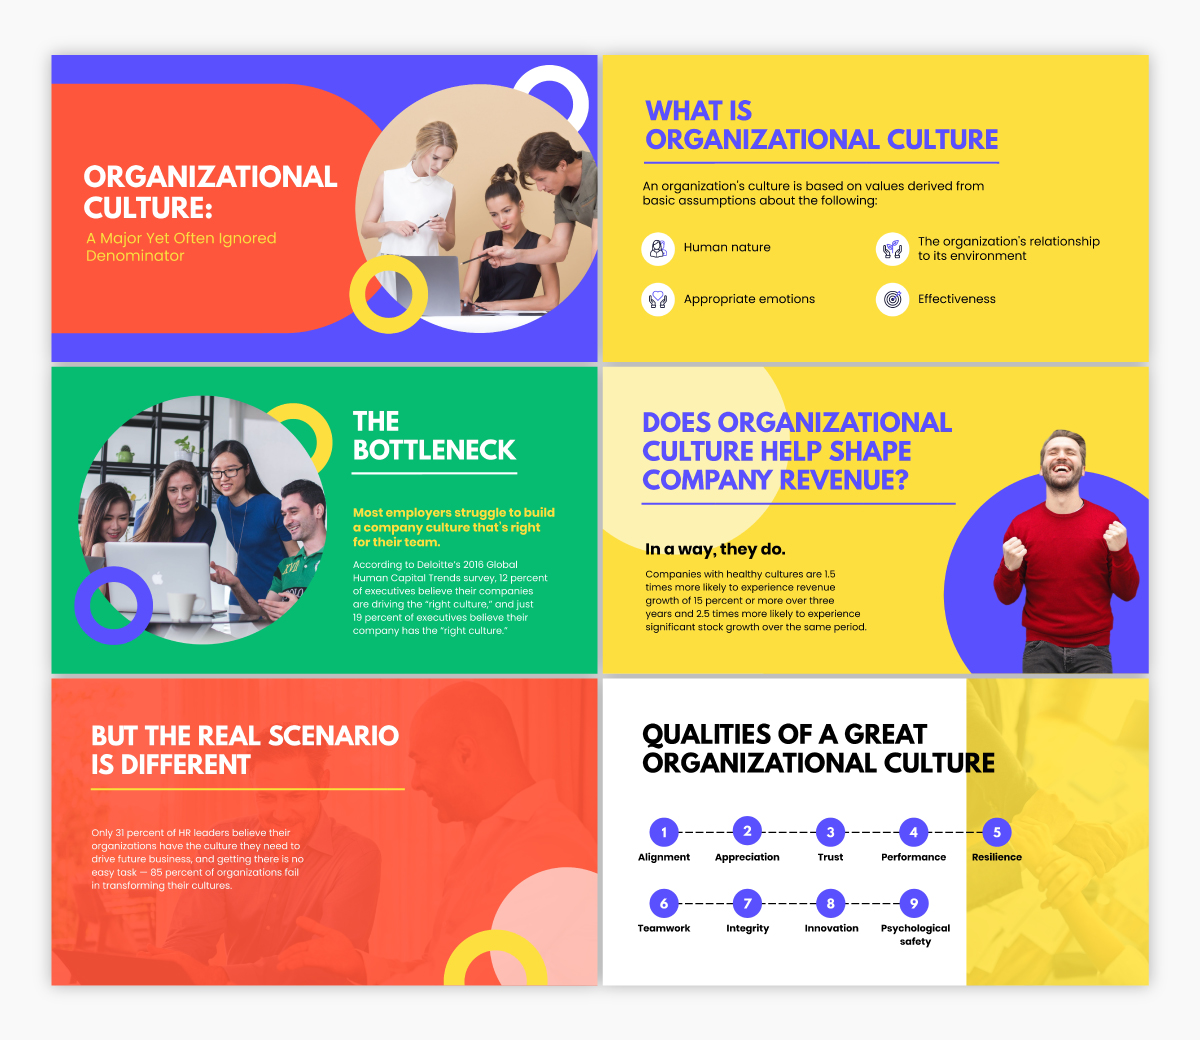 An organizational culture keynote template available in Visme.